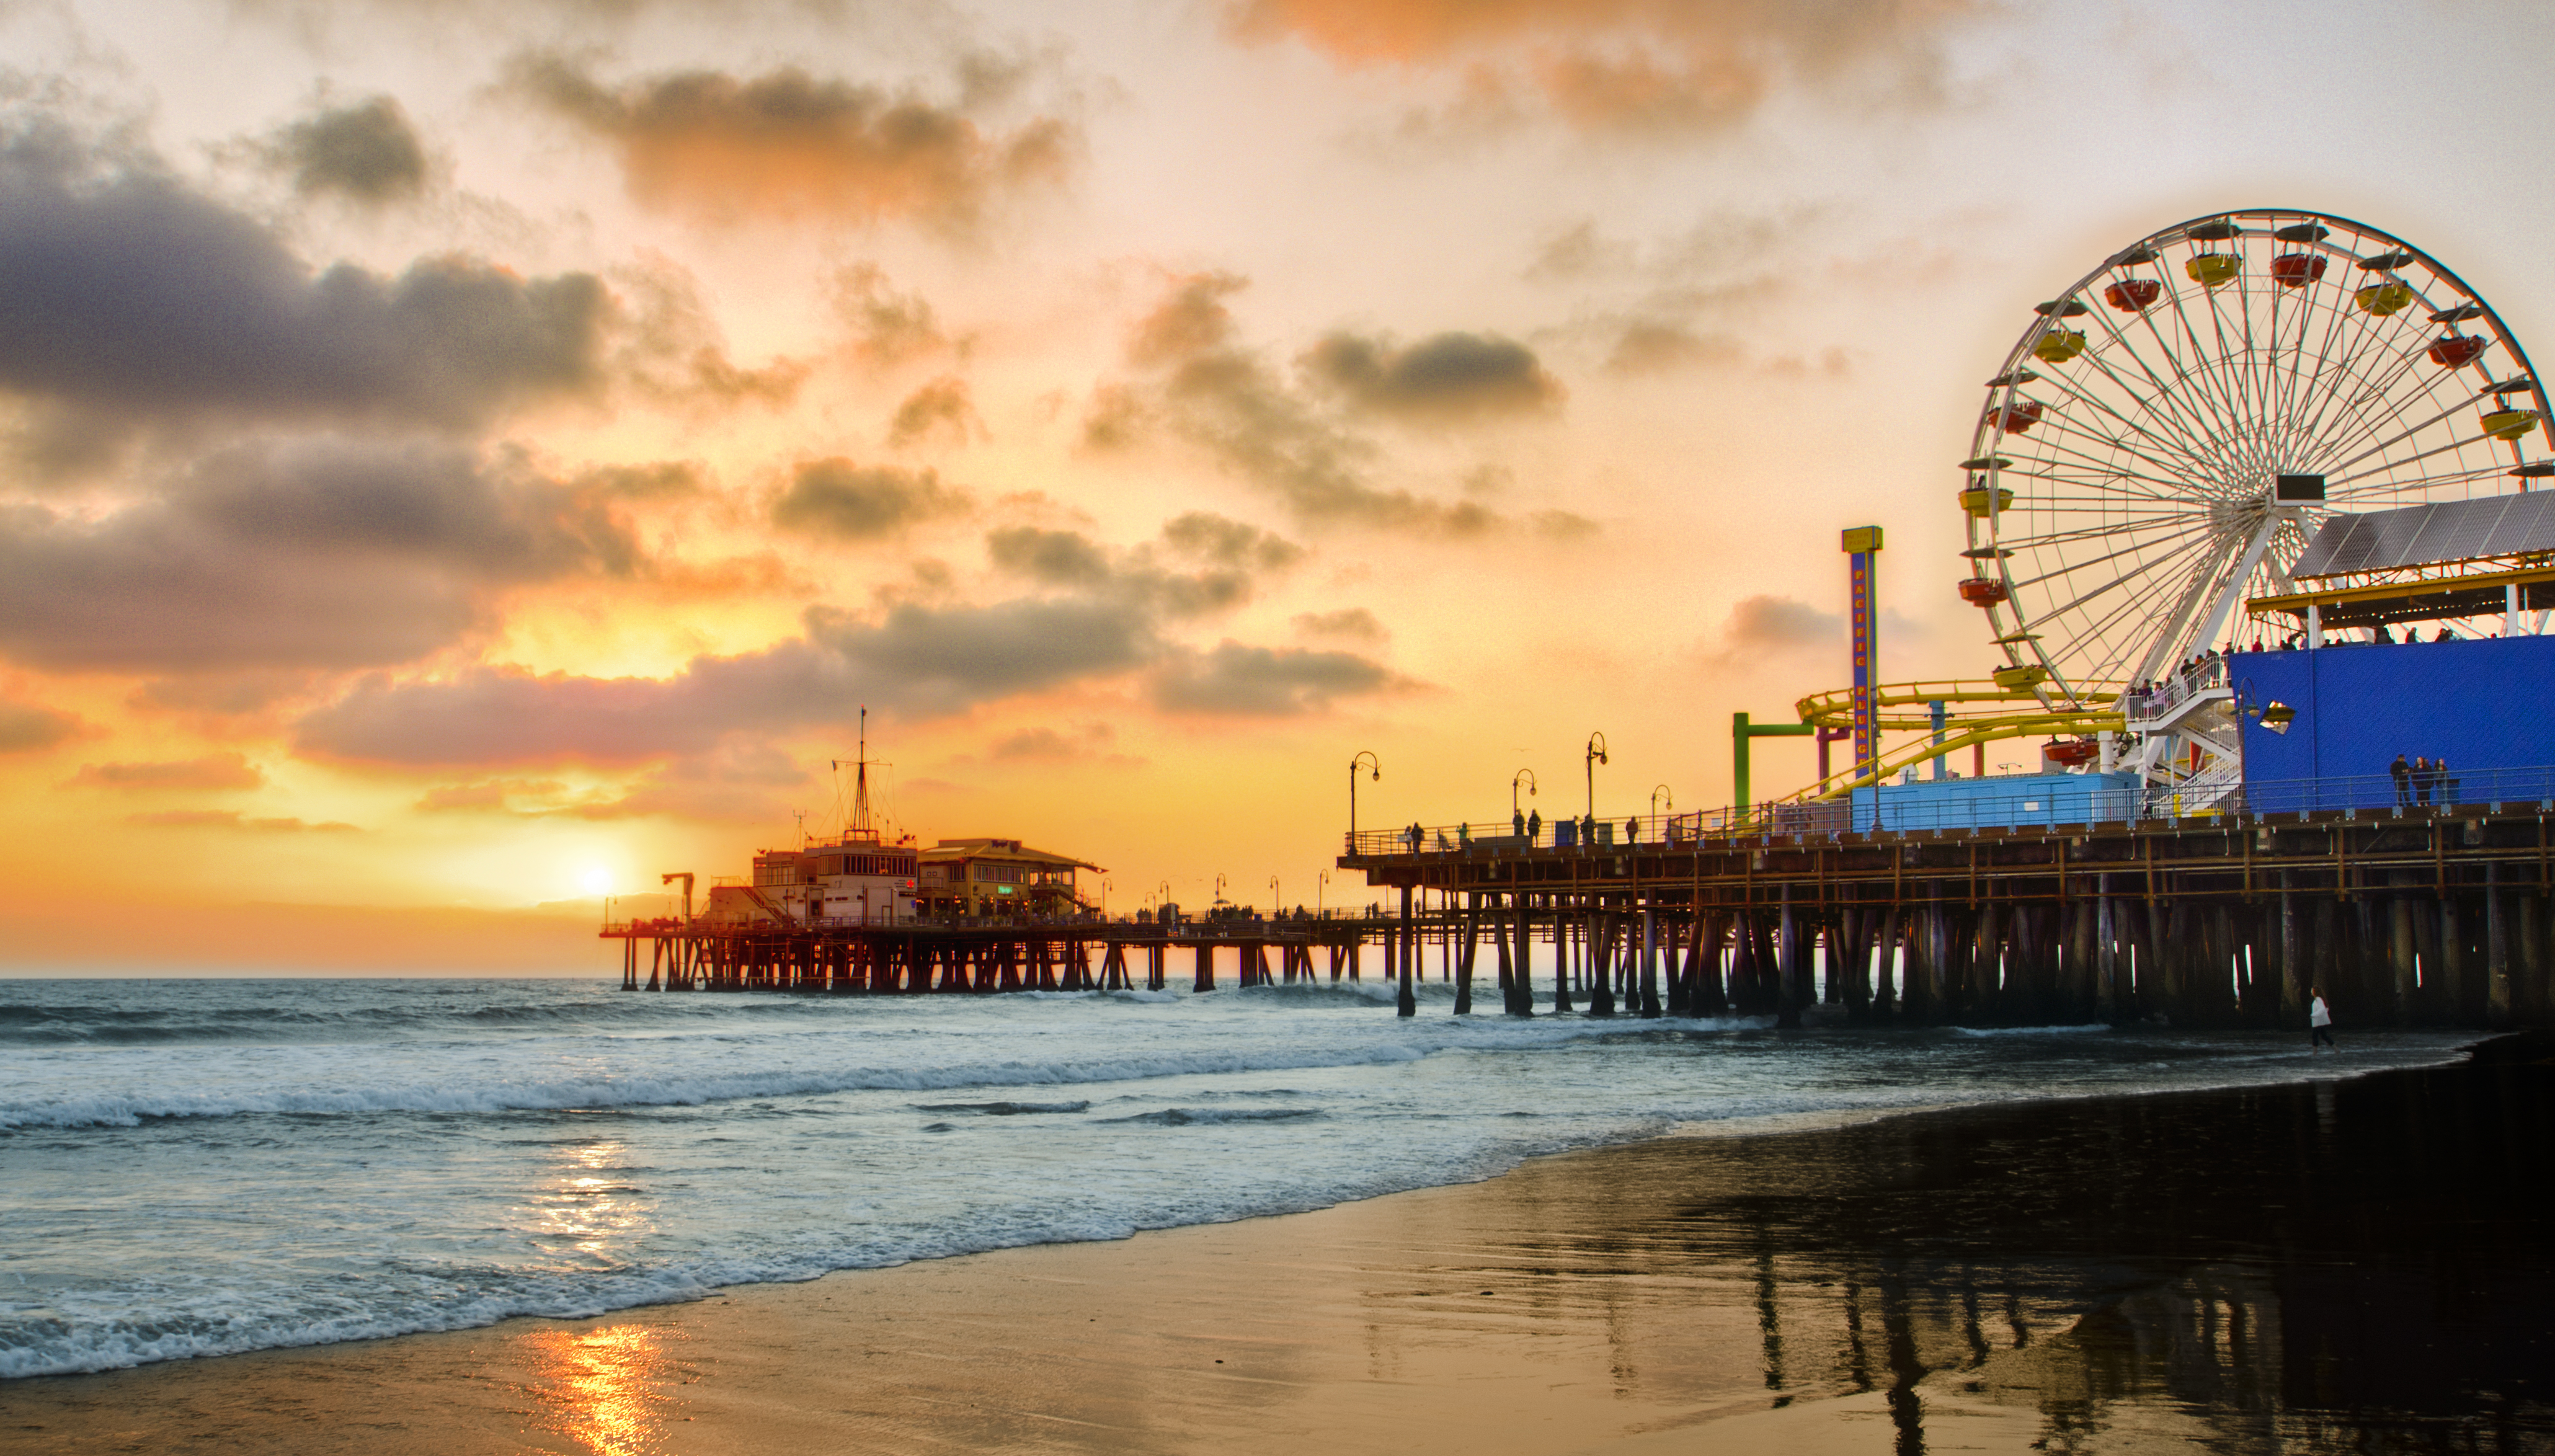 Santa Monica Pier Is Listed As One Of The Most Polluted Beaches In Southern  California.